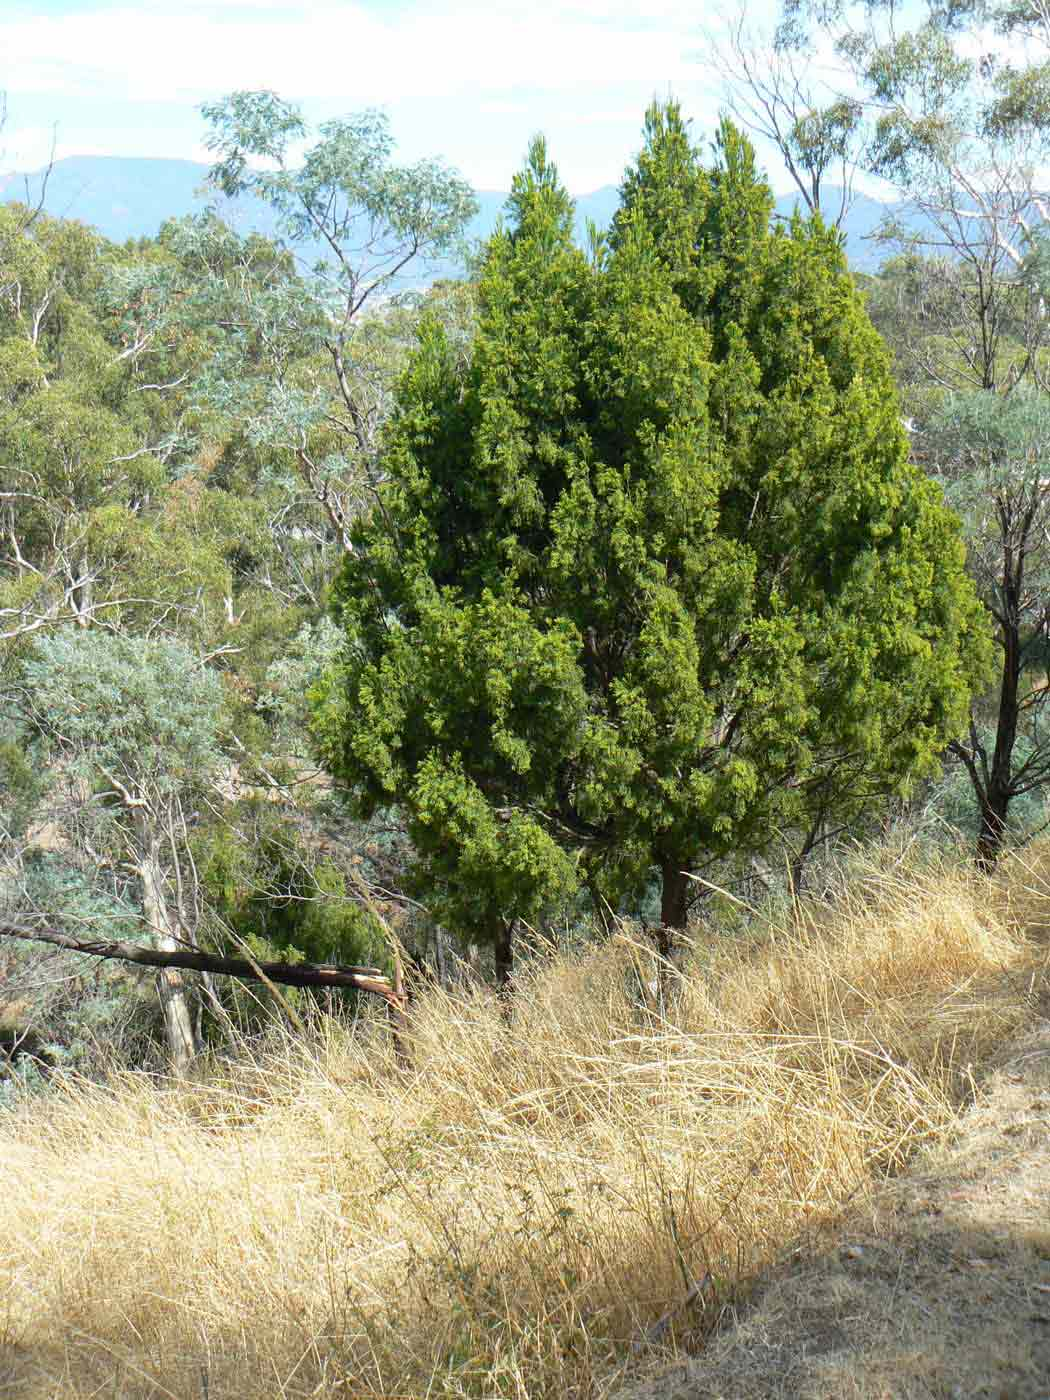 Colour photo of bushland with a tree with dense foliage standing on a slope. - click to view larger image